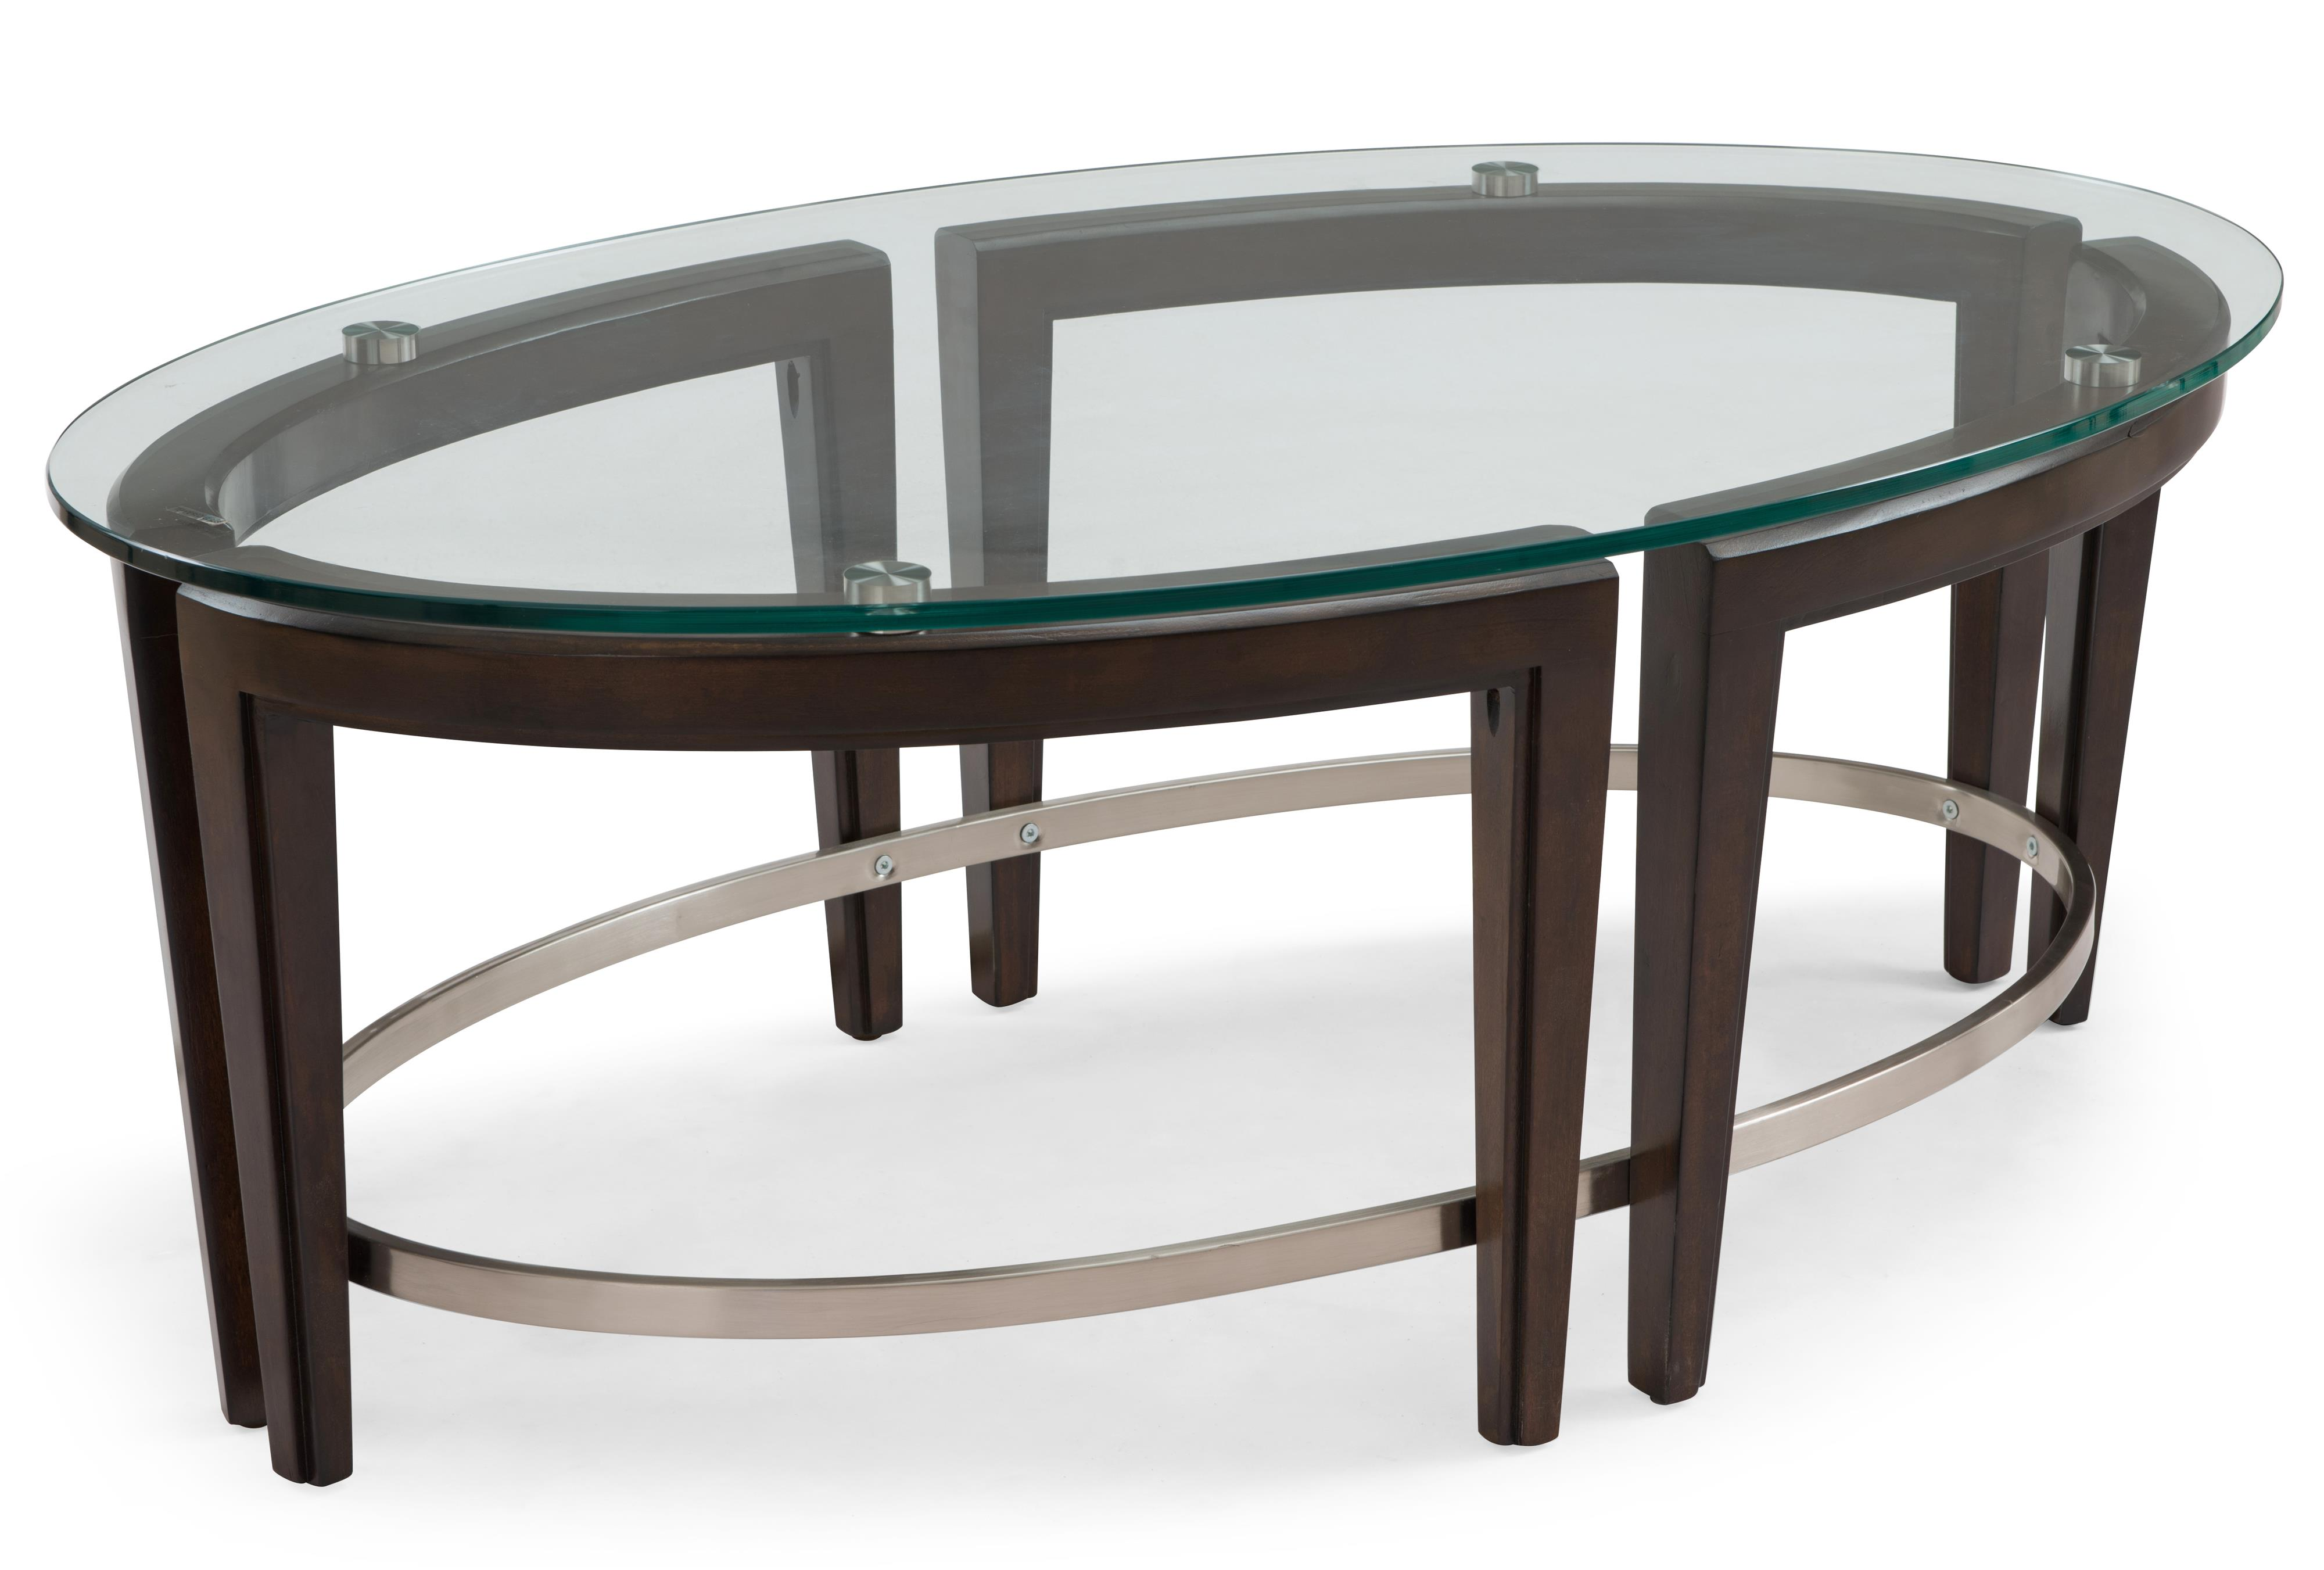 magnussen home carmen contemporary wood and glass oval cocktail products color metal accent table concrete dining tables danish pier one seat cushions reclaimed pub target nate